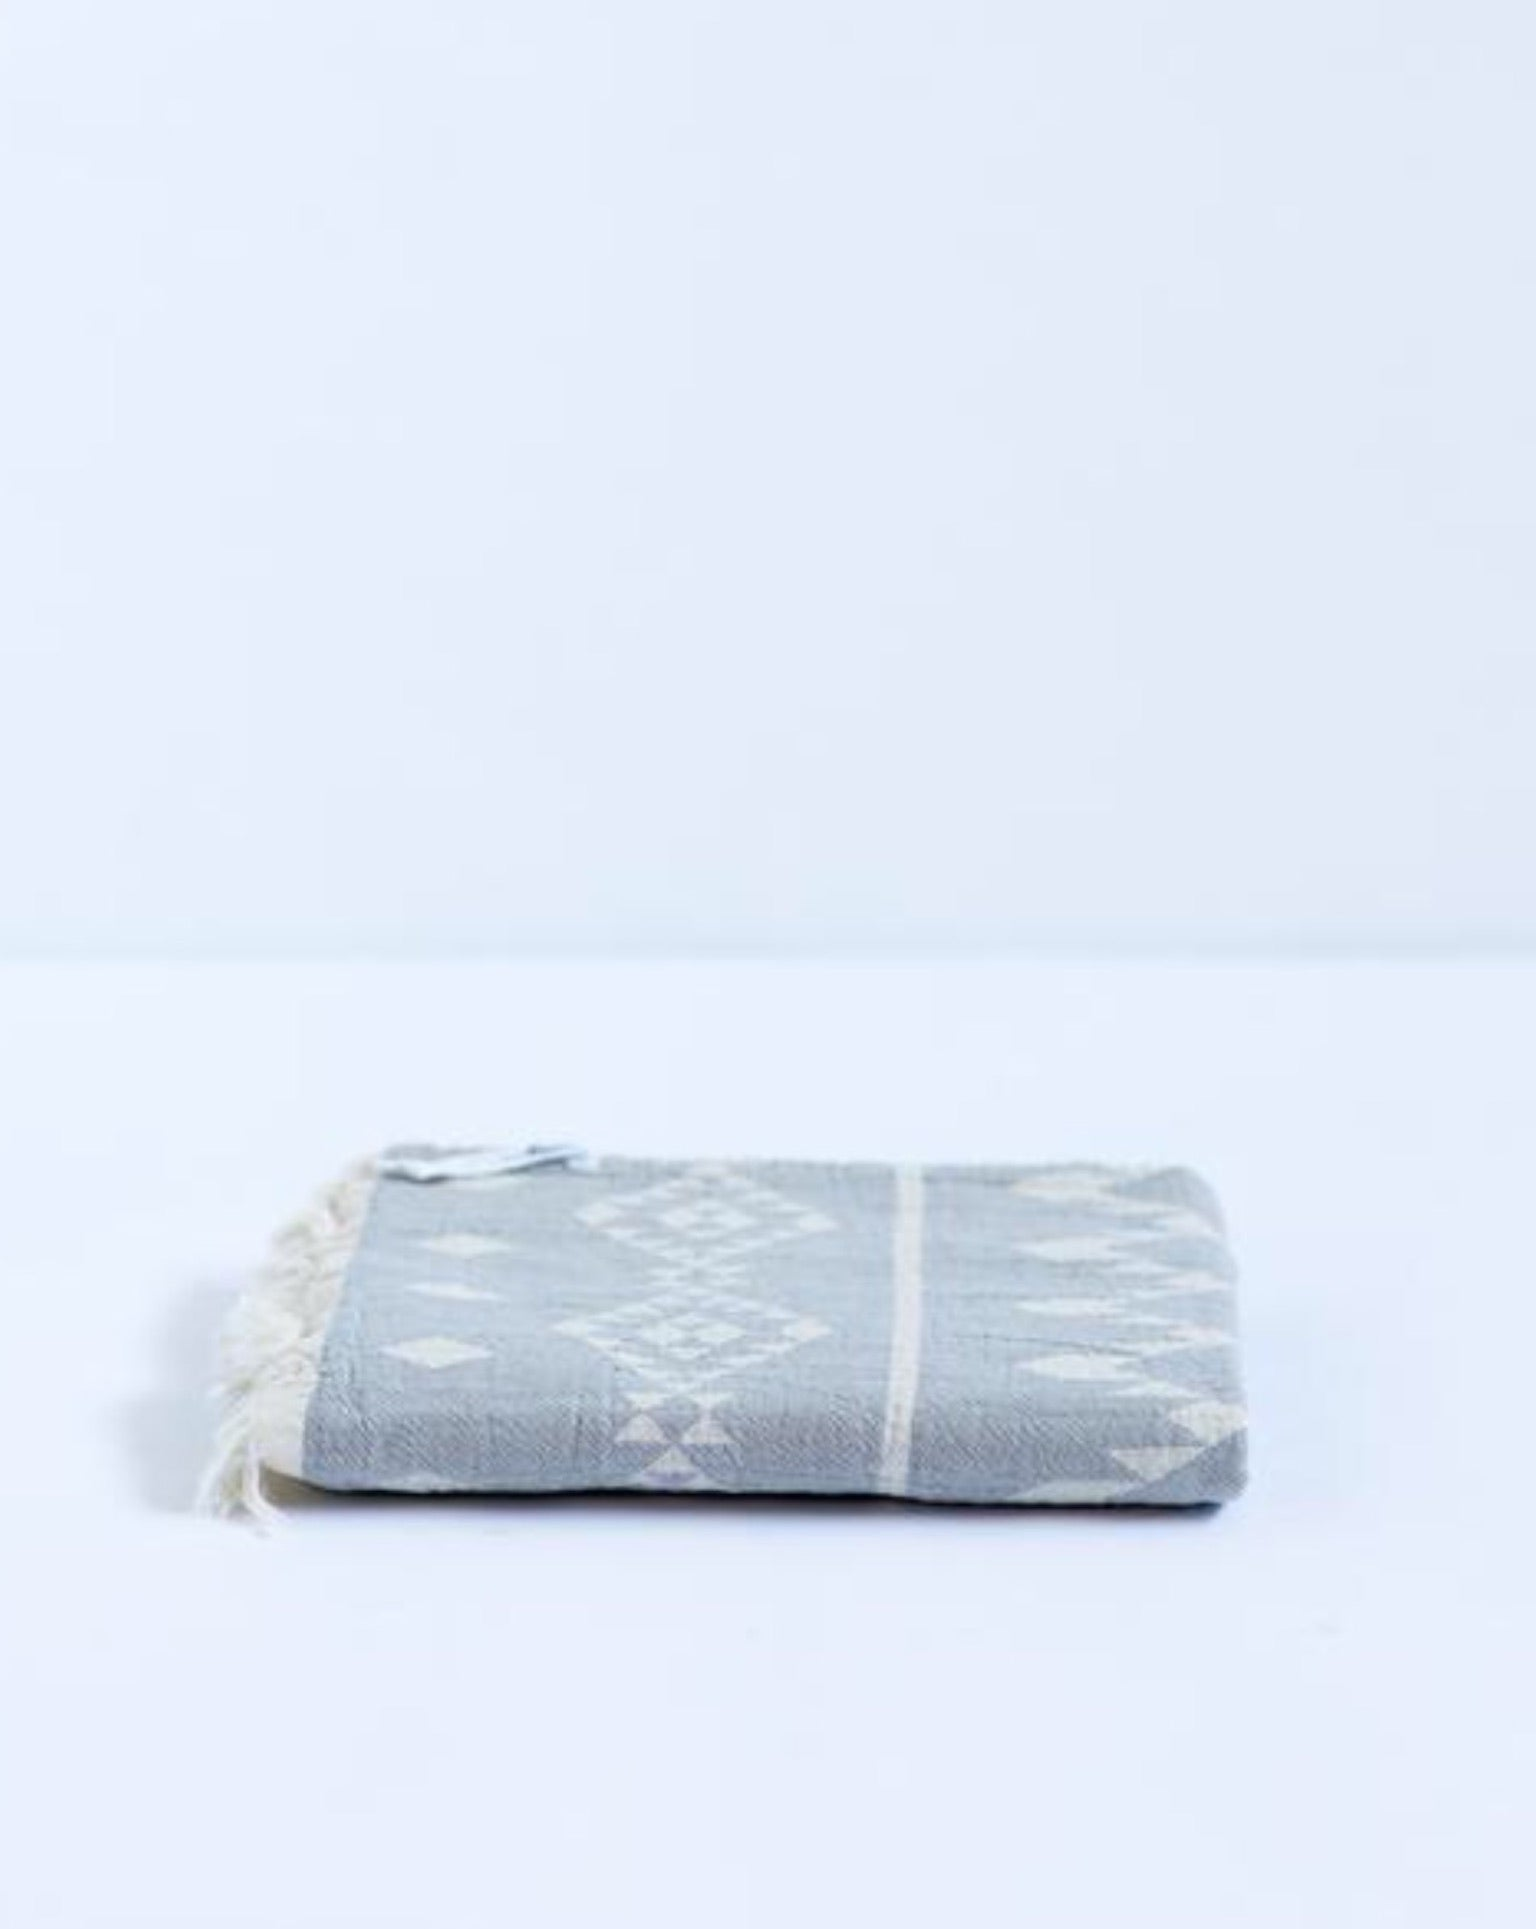 Oteki Kilim Towel - Light Grey